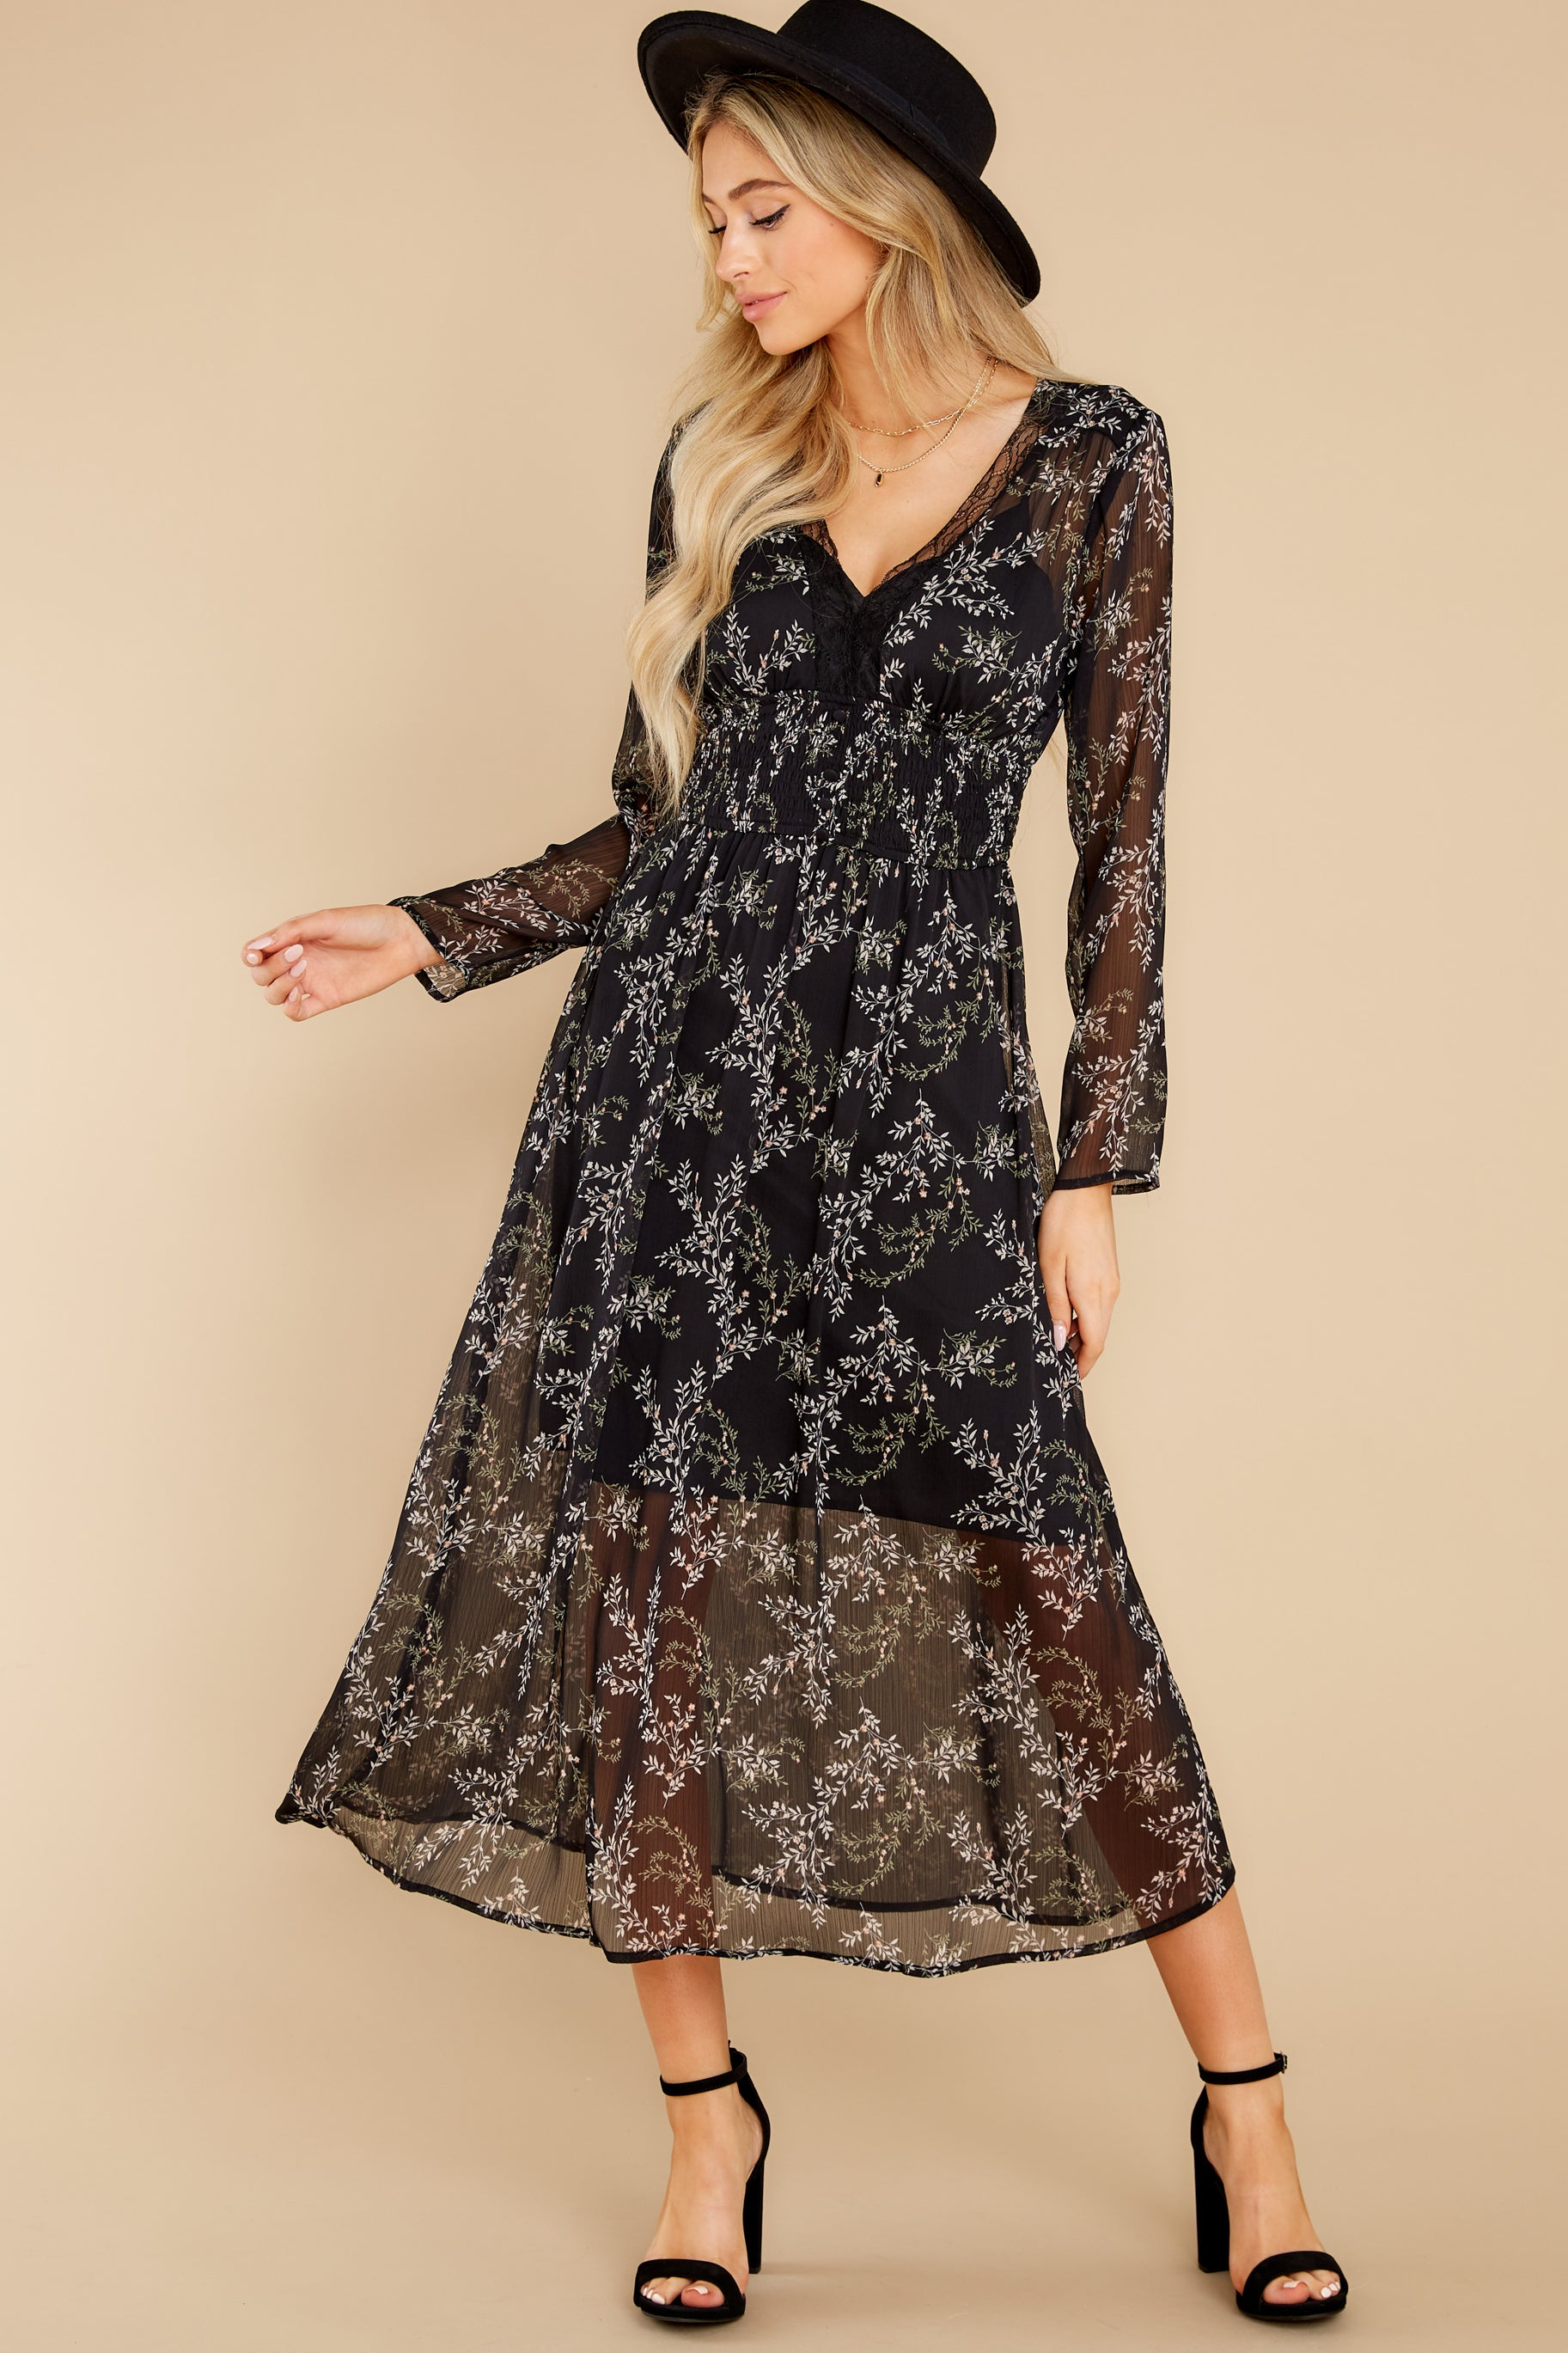 2 Build An Empire Black Floral Print Maxi Dress at reddress.com